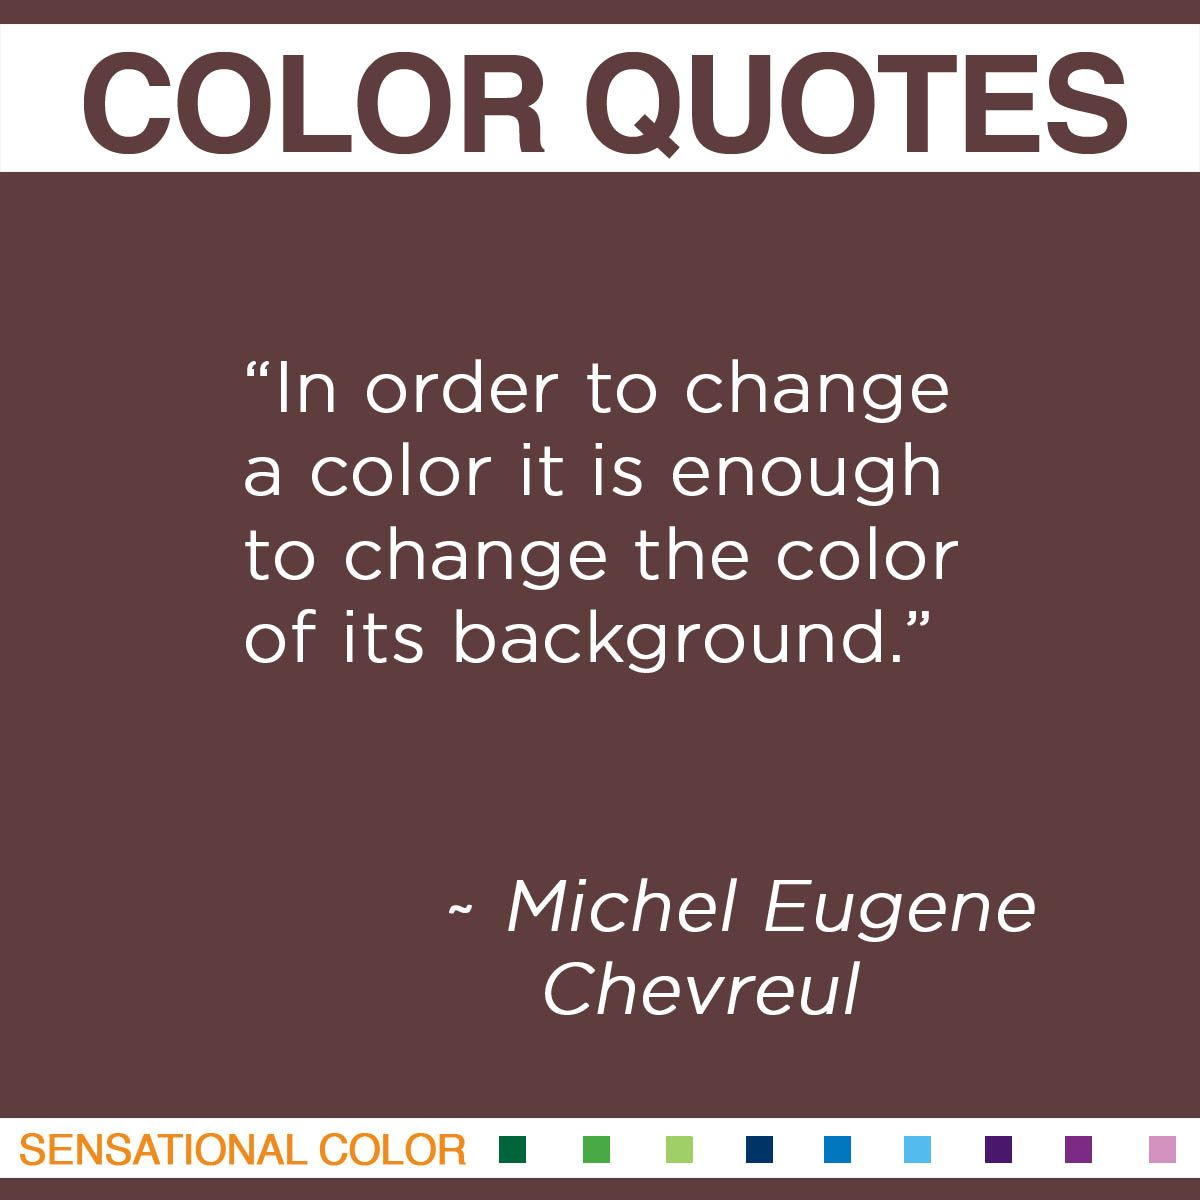 """In order to change a color it is enough to change the color of its background.""  - Michel Eugene Chevreul"